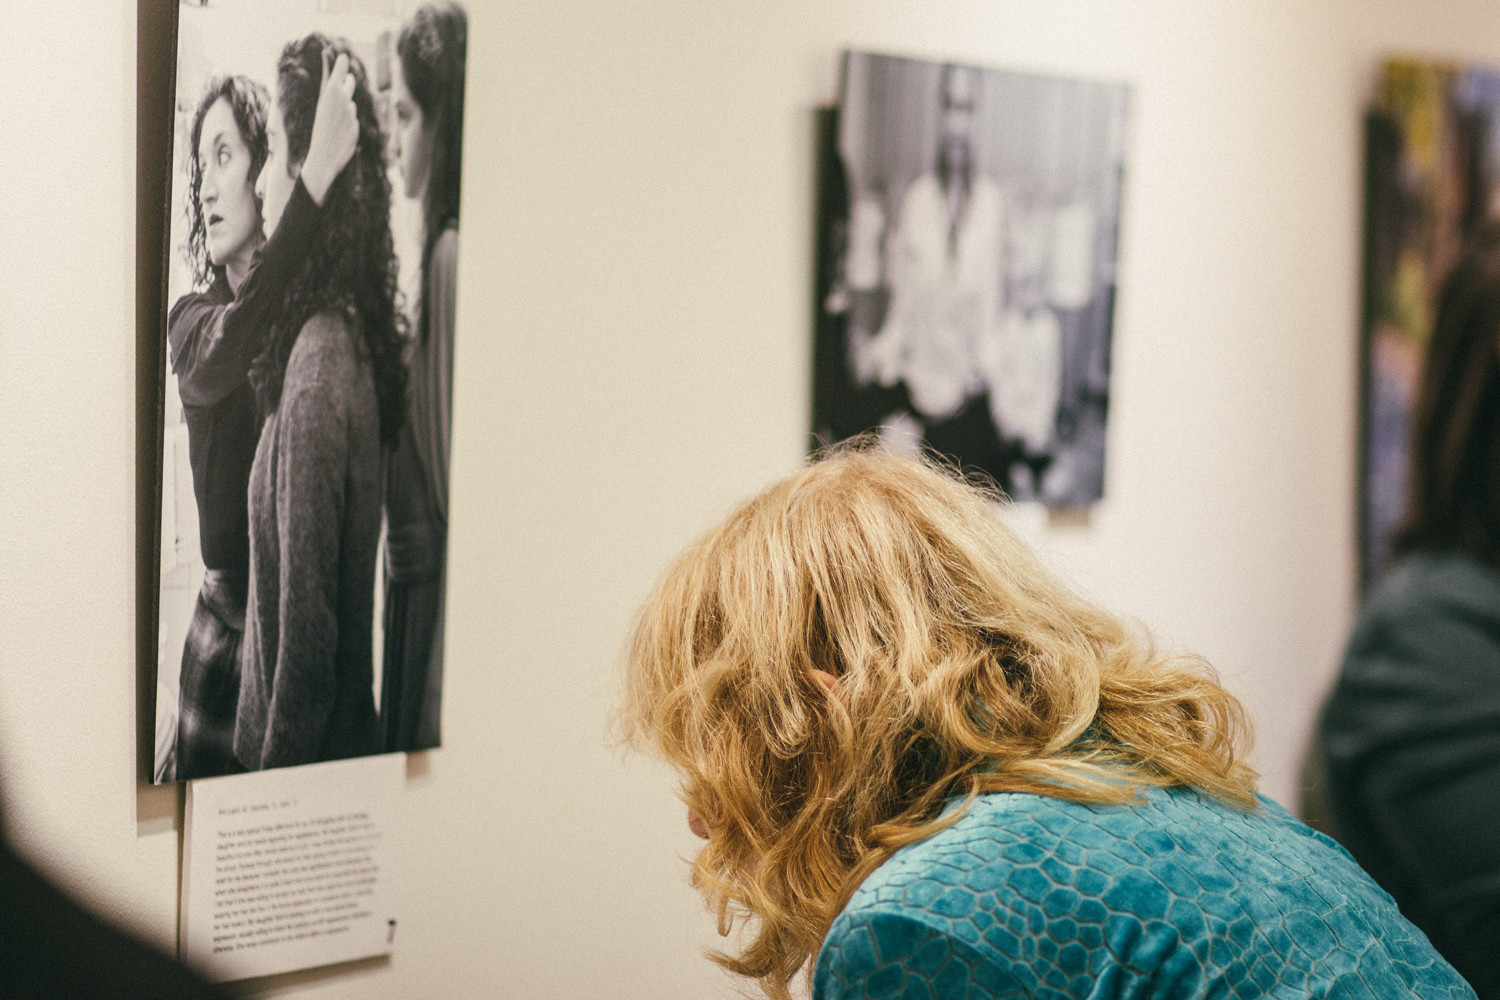 A visitor reads the caption beneath one of the gallery's photos. Photographer Aviva Braun's exhibit, 'The Embodyment of Jewish Femininity,' is on display at The Riverdale Y's Gallery 18 throughout November.